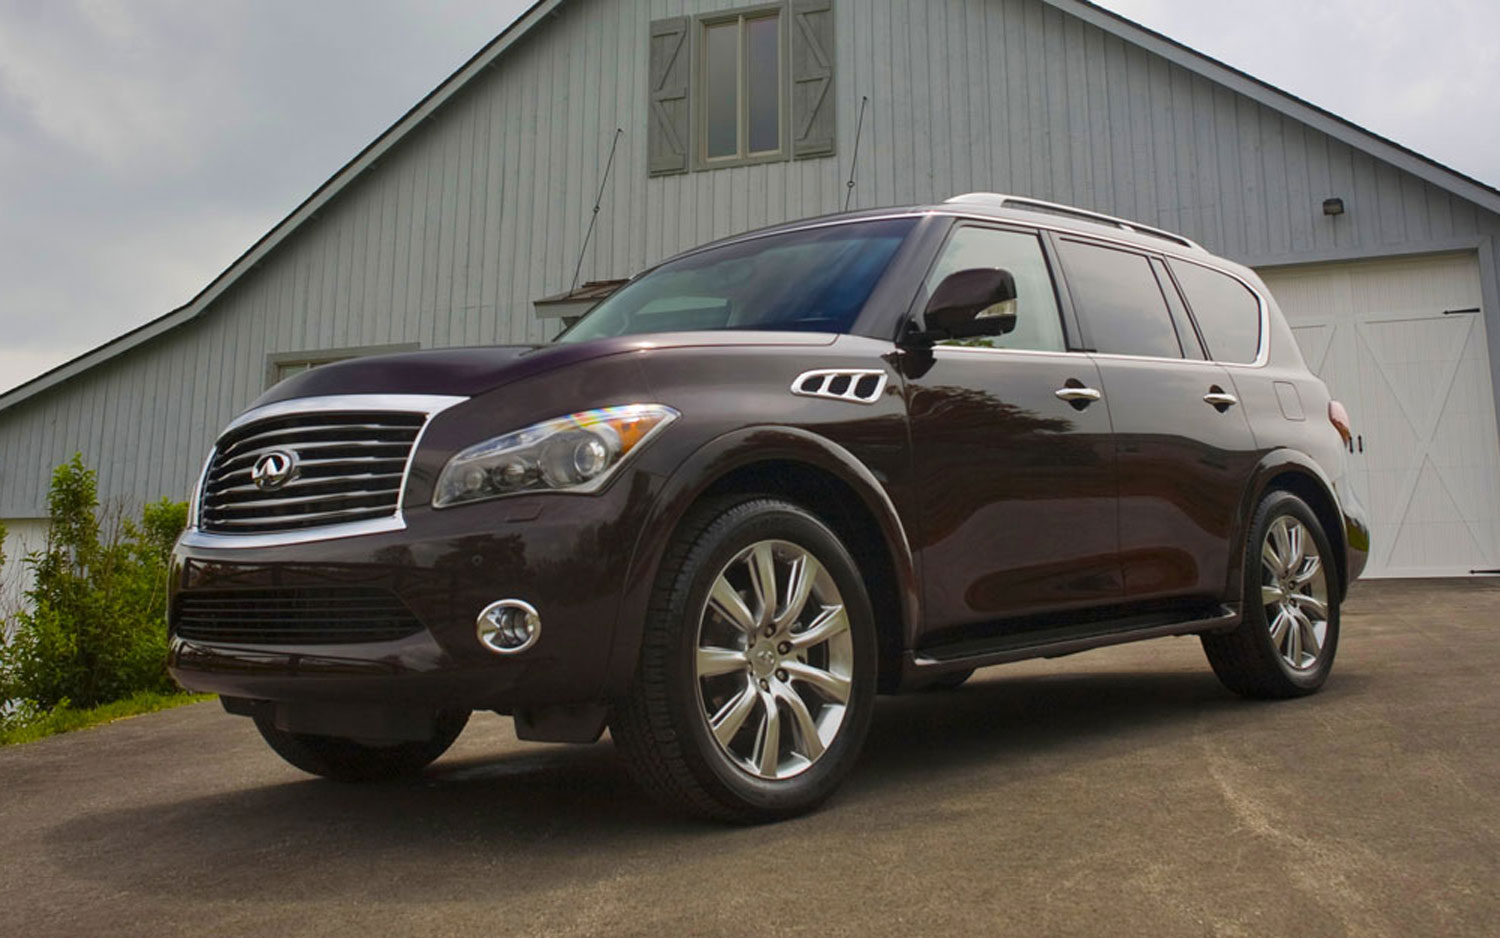 How much does an infiniti qx56 cost